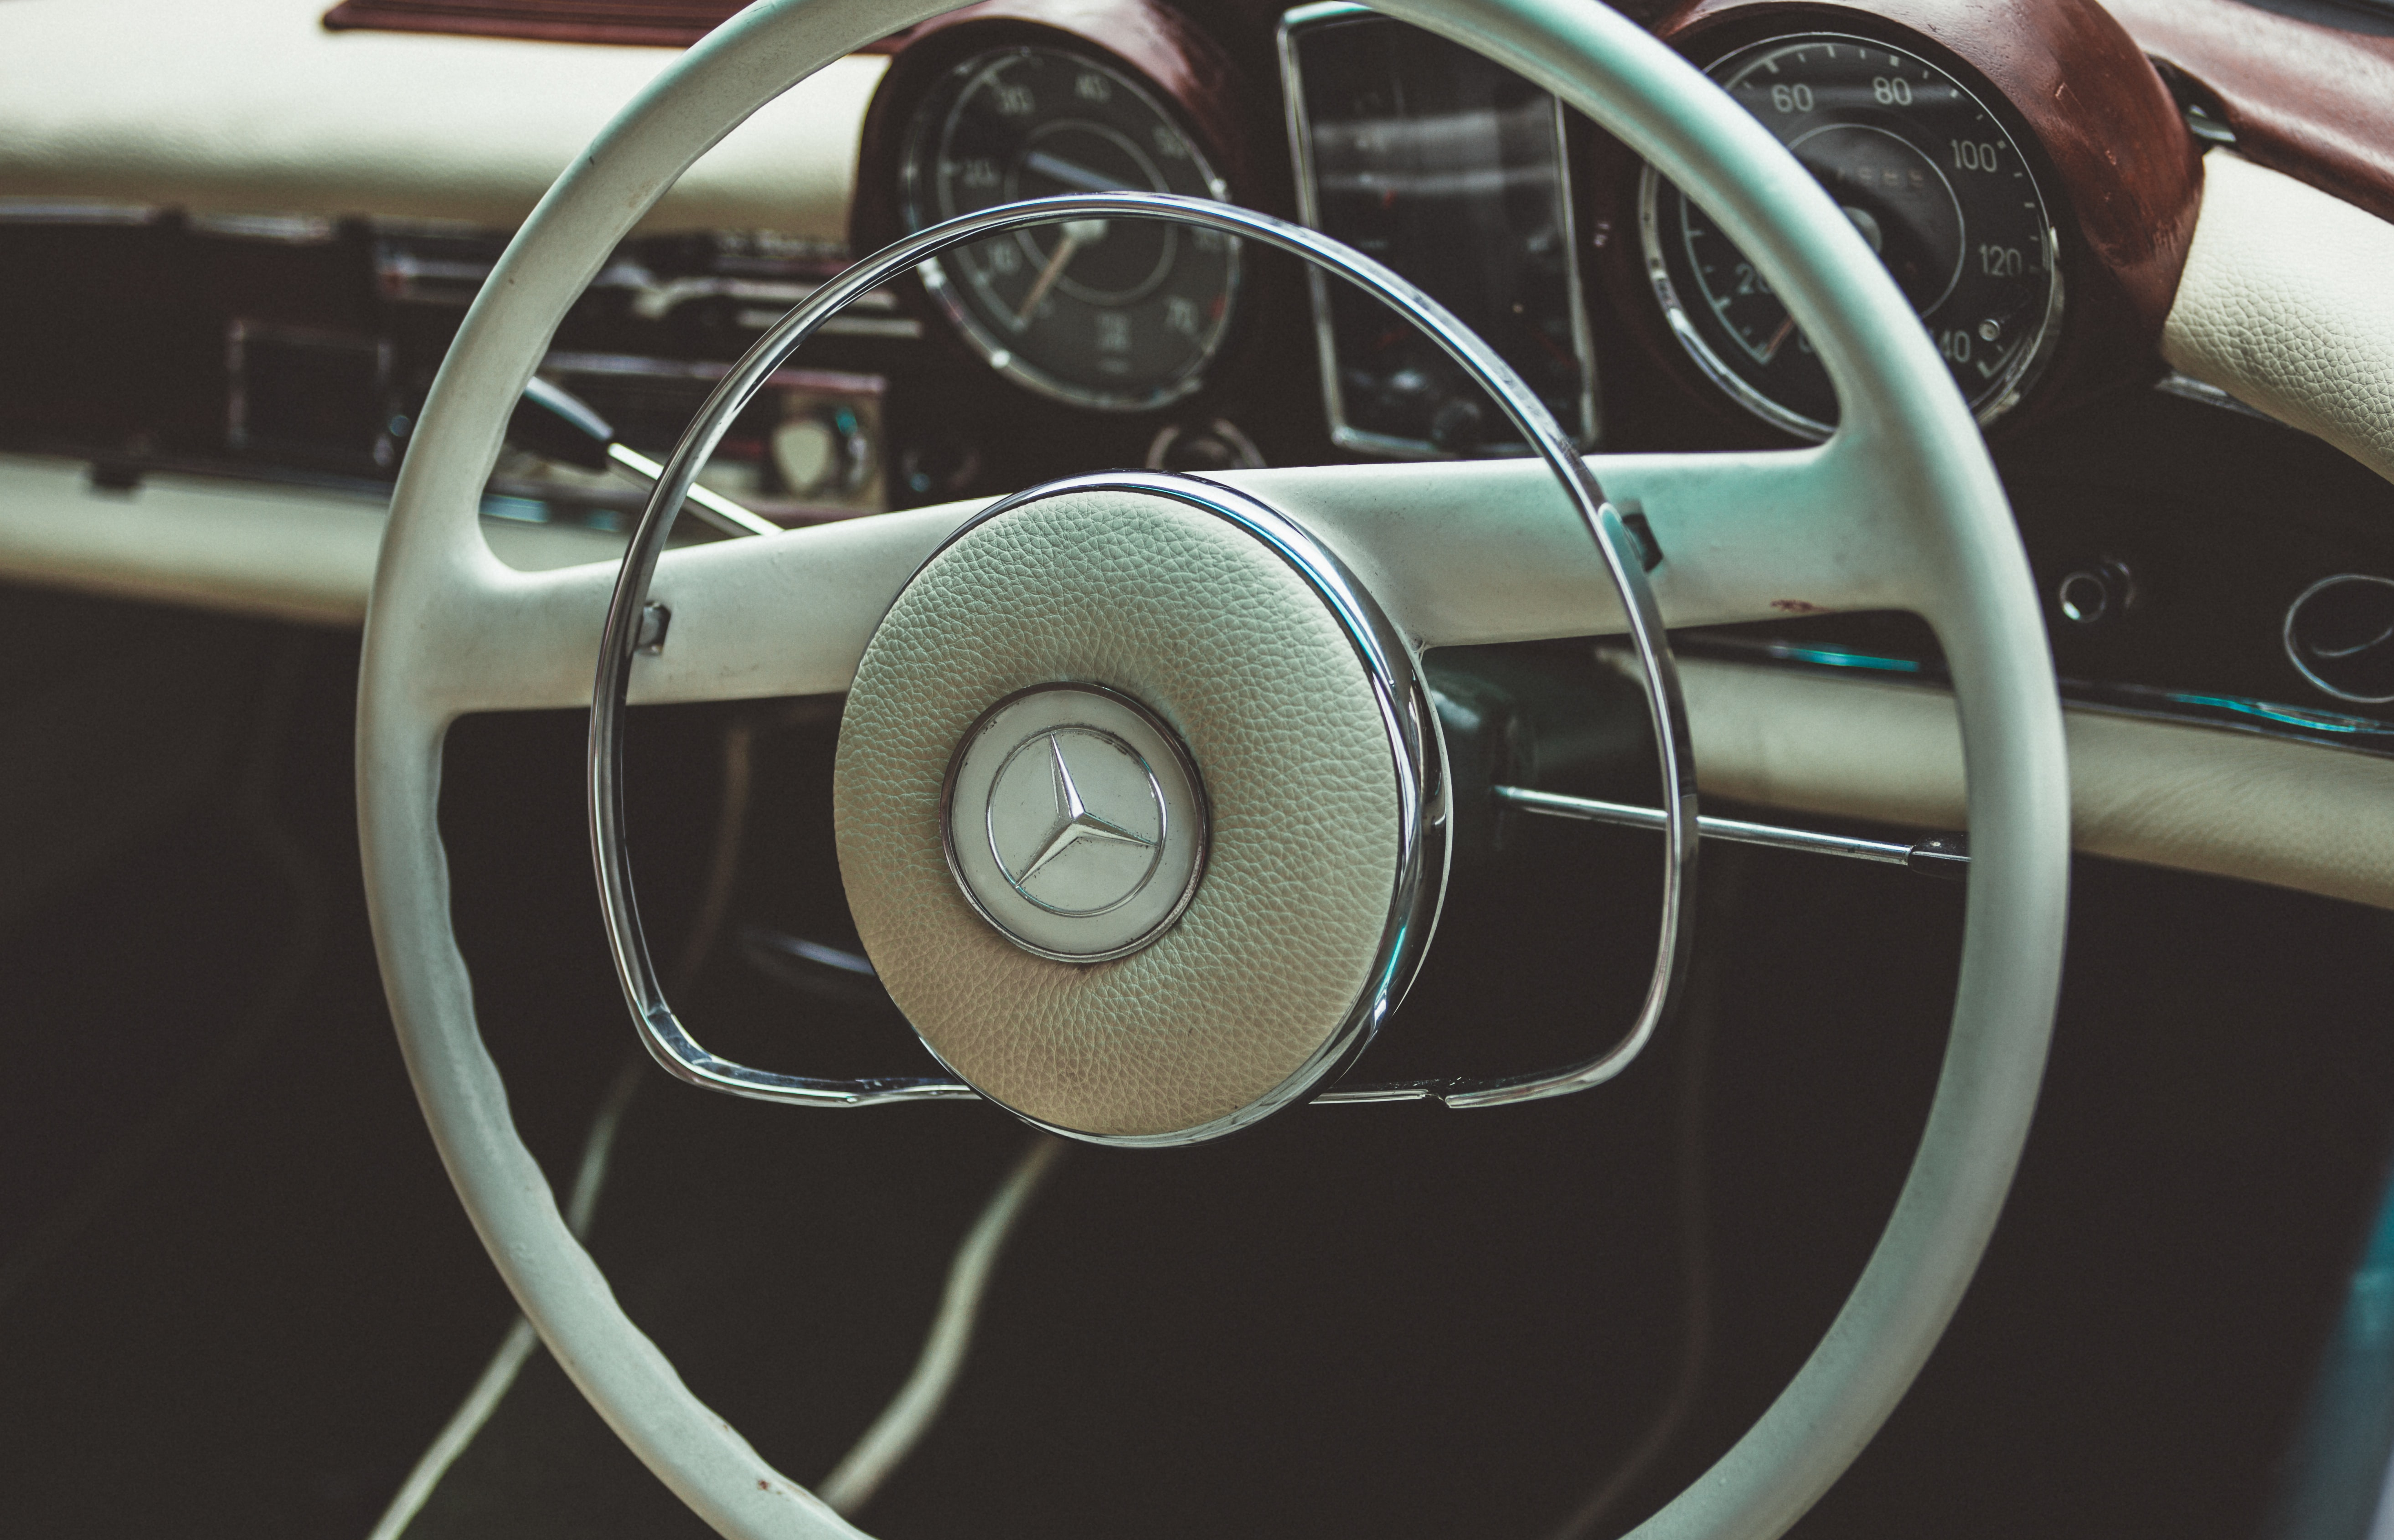 Steering wheel and interior of retro Mercedes Benz.